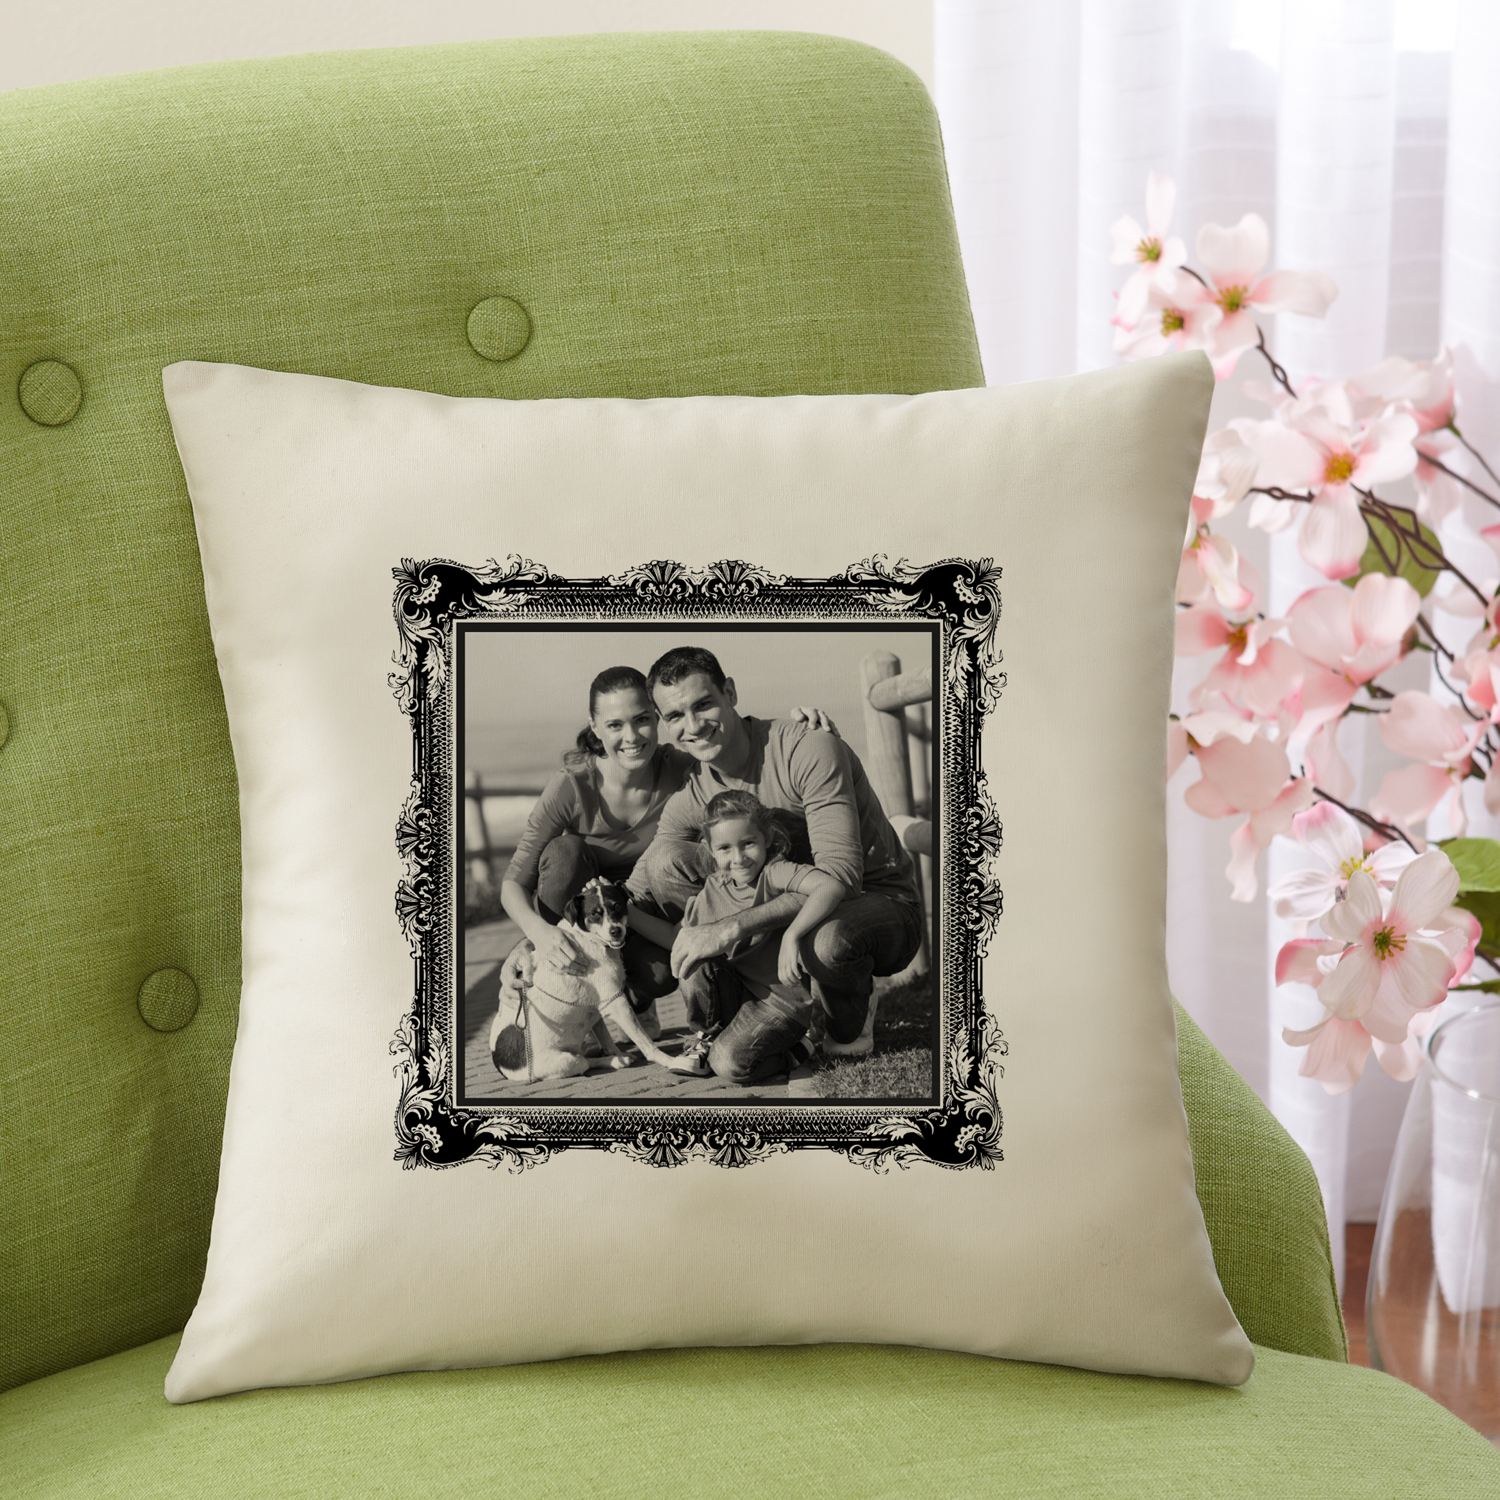 "Personalized Photo Accent Pillow With Antique Border 15""x15"